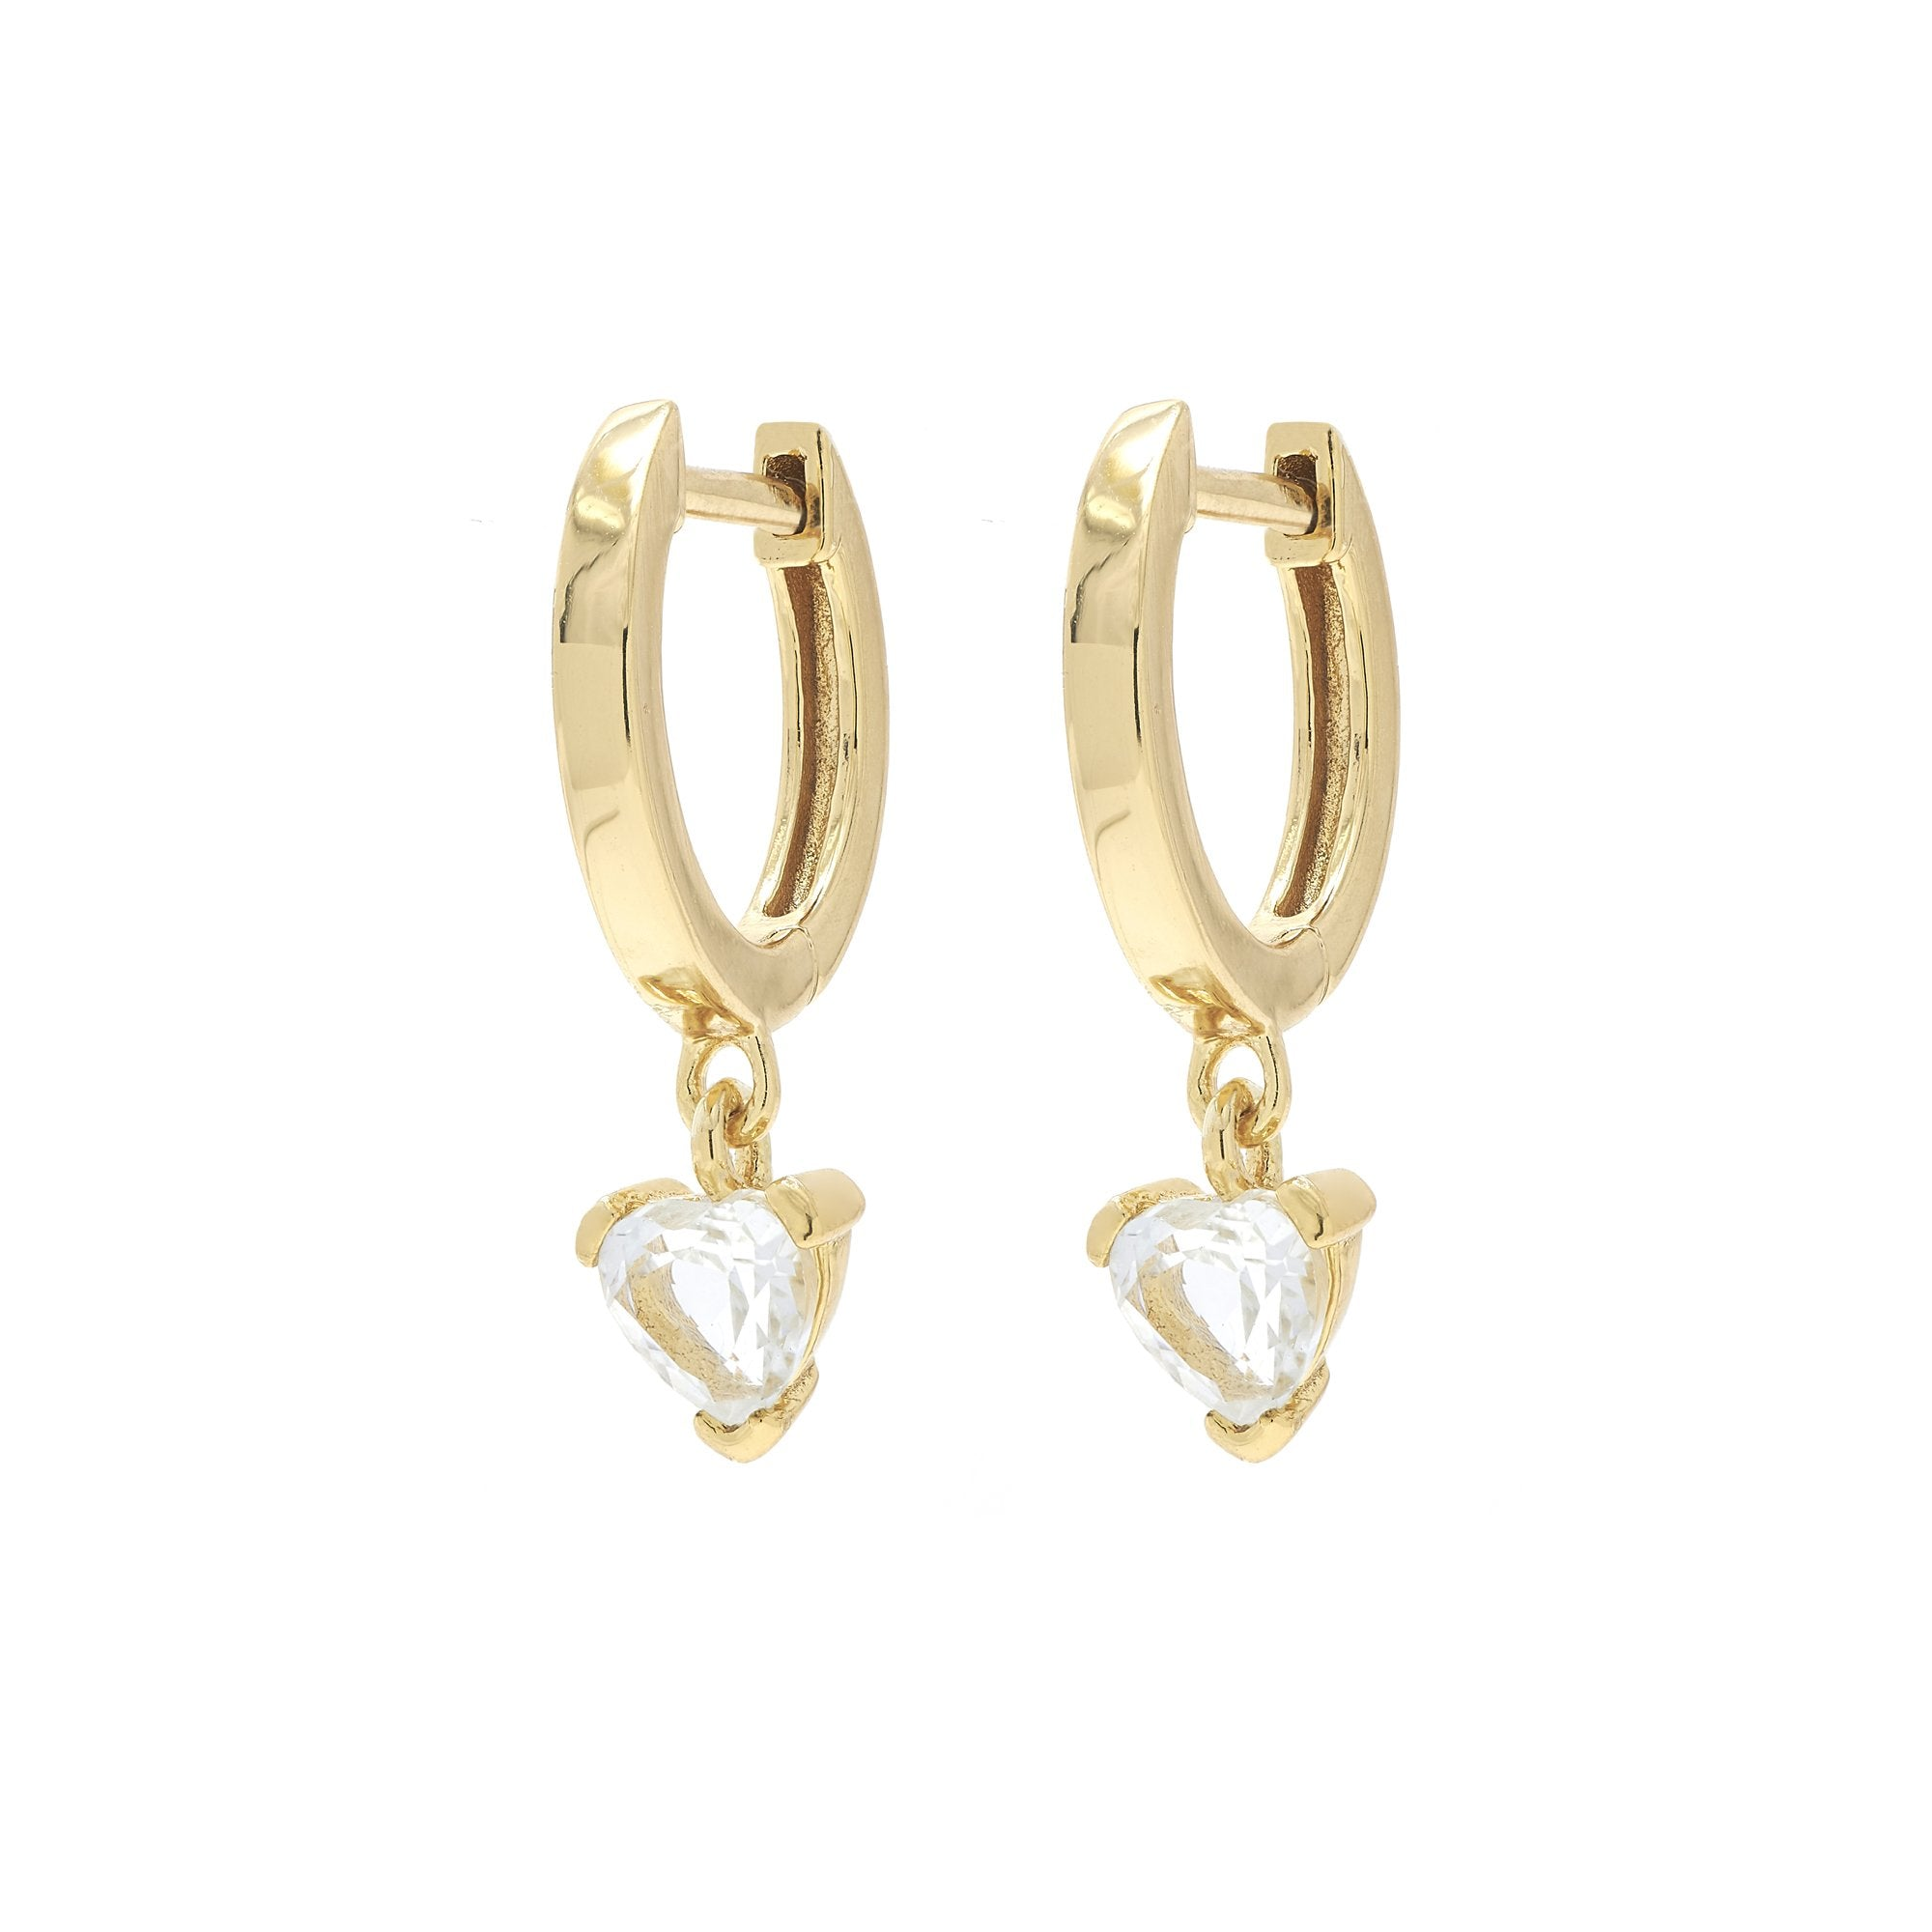 Gold Plated White Topaz Heart Huggies